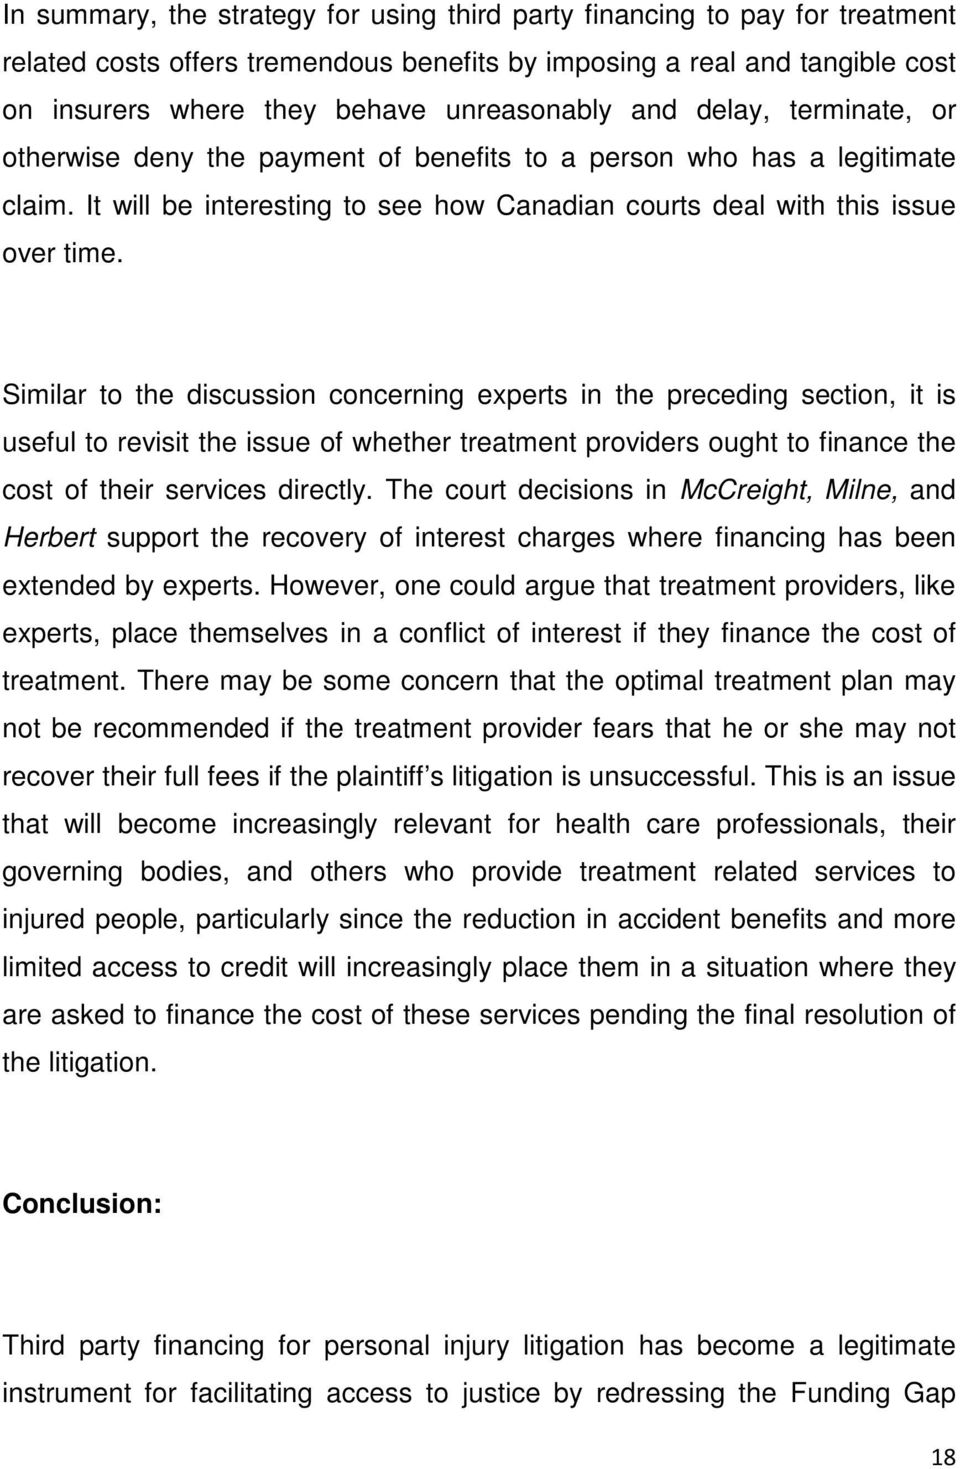 Similar to the discussion concerning experts in the preceding section, it is useful to revisit the issue of whether treatment providers ought to finance the cost of their services directly.